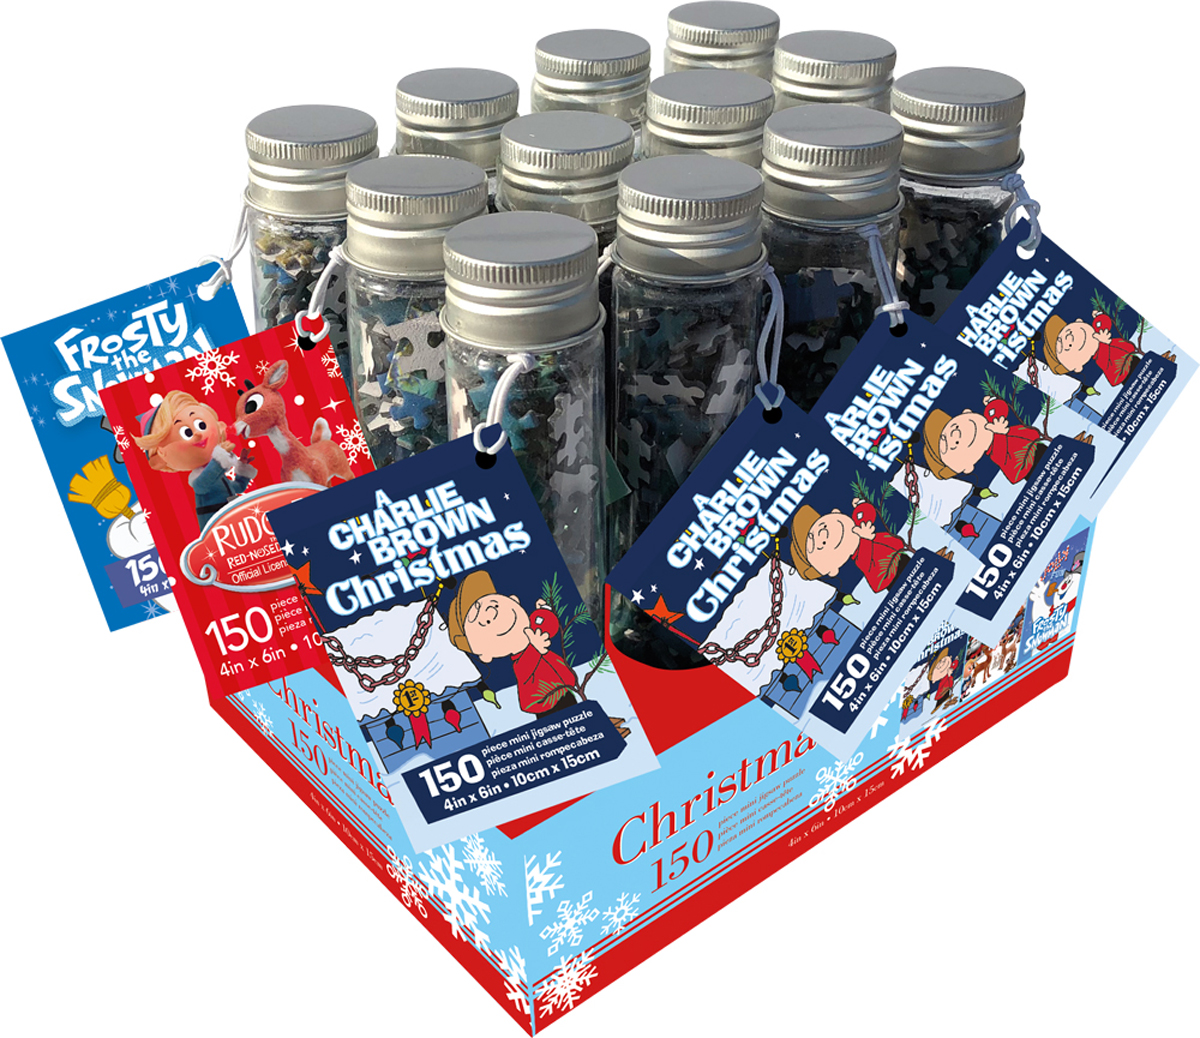 Traditional Christmas 150pc Puzzle in a Tube For Ordering